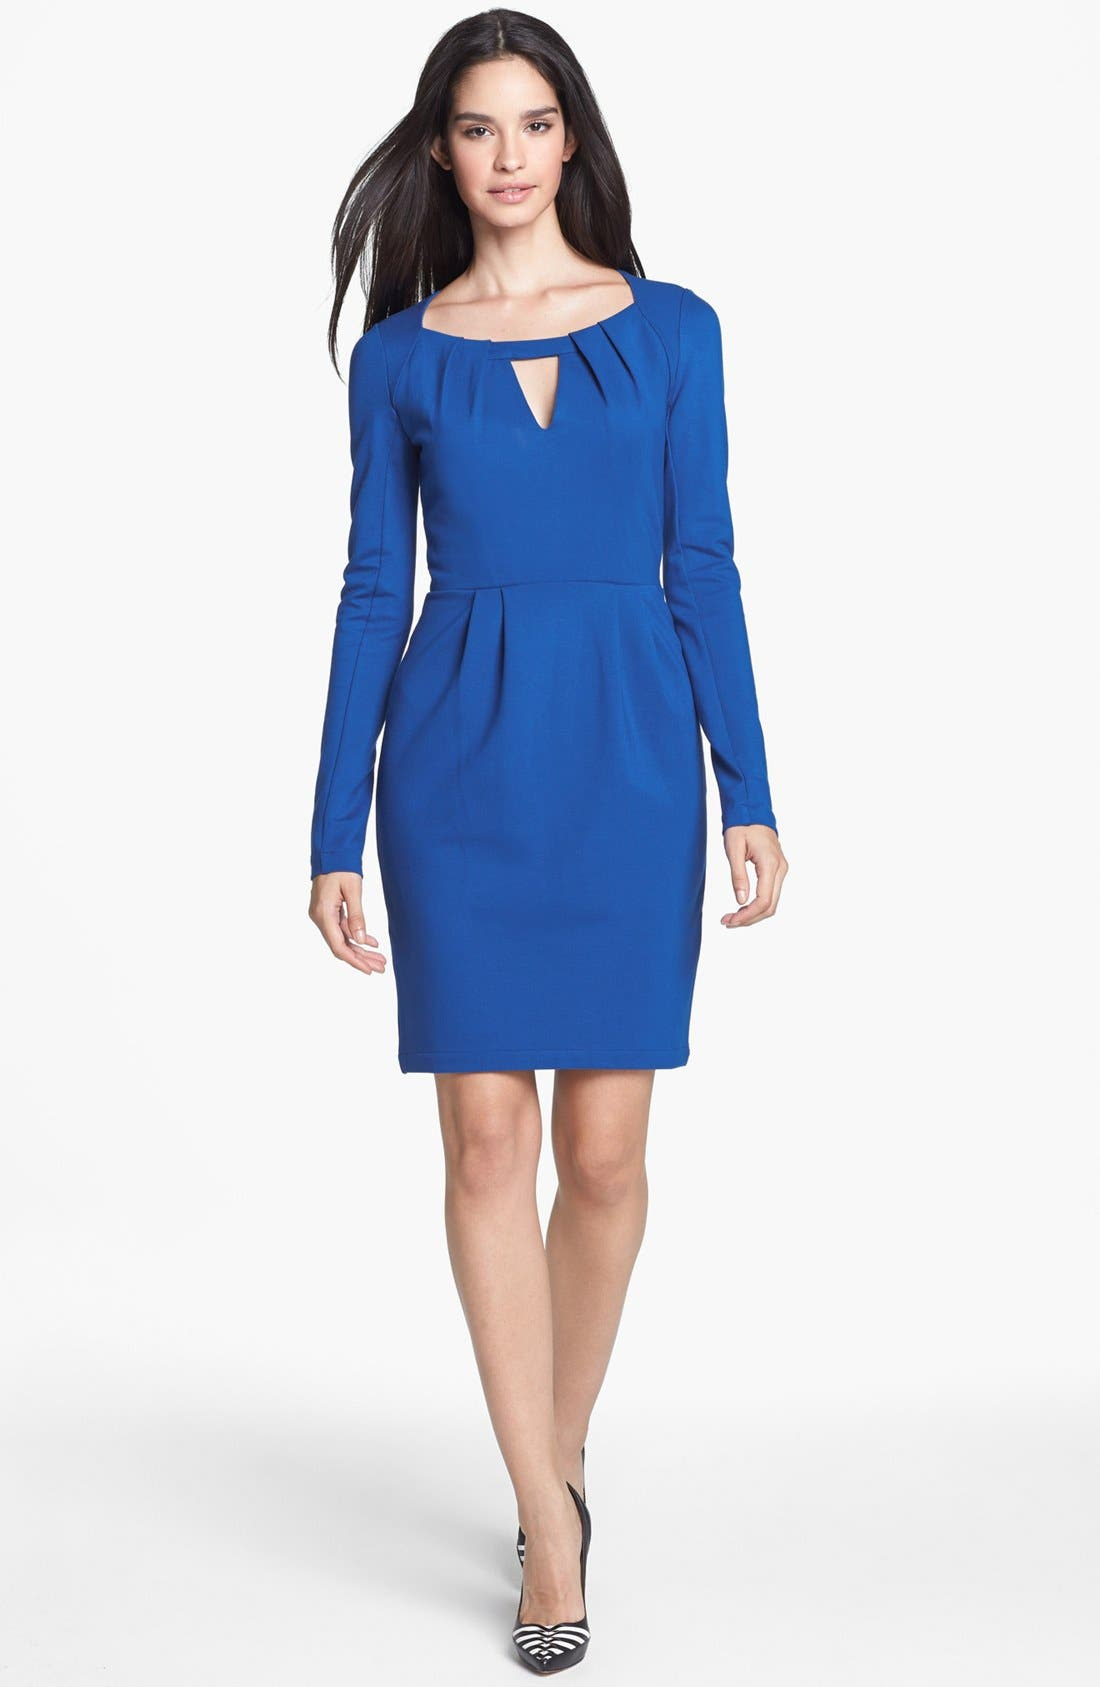 Alternate Image 1 Selected - French Connection 'Marie' Ponte Knit Sheath Dress